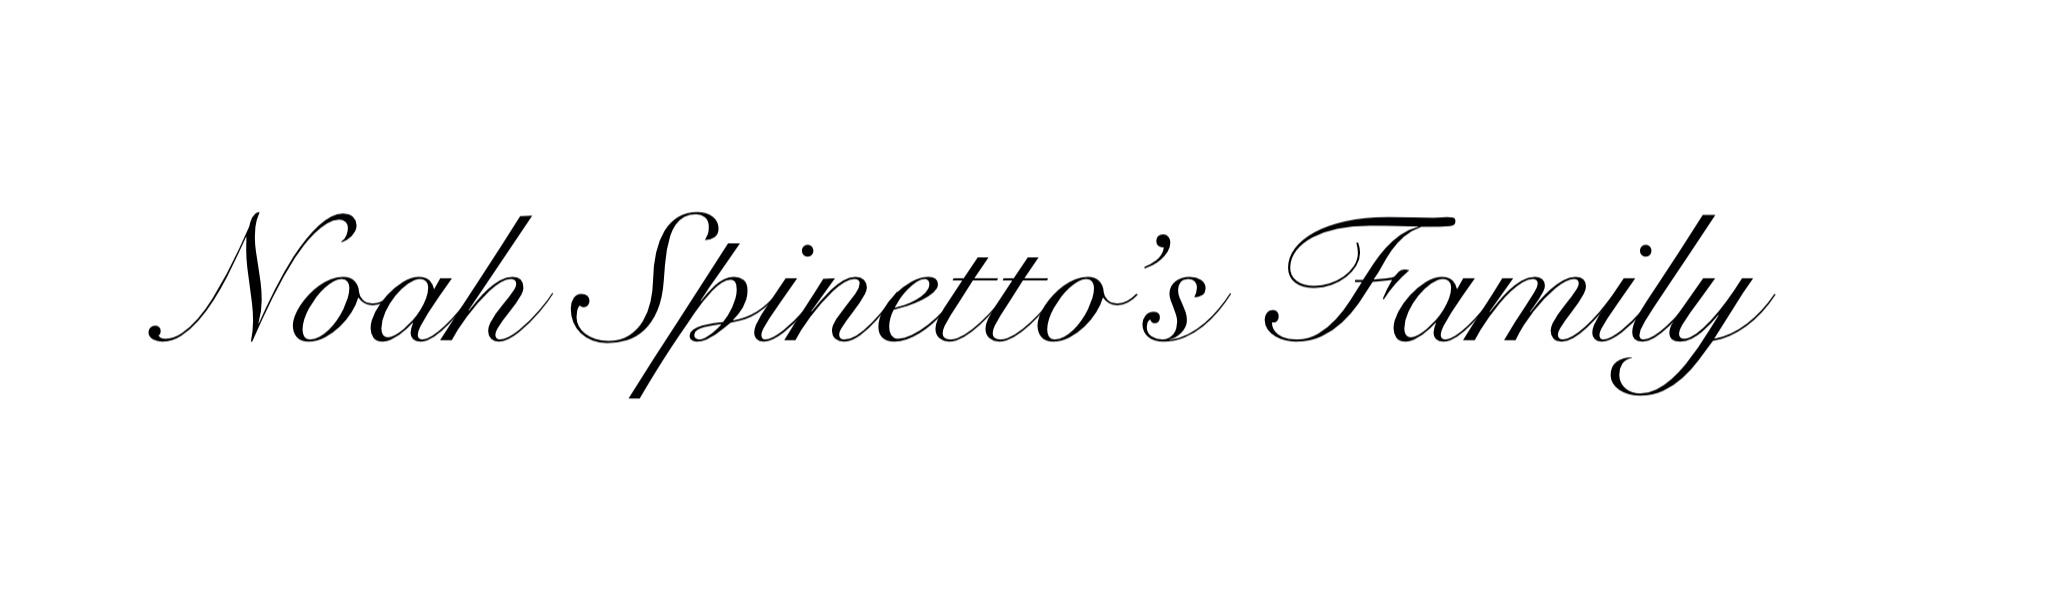 Spinetto+Family+Logo.jpg